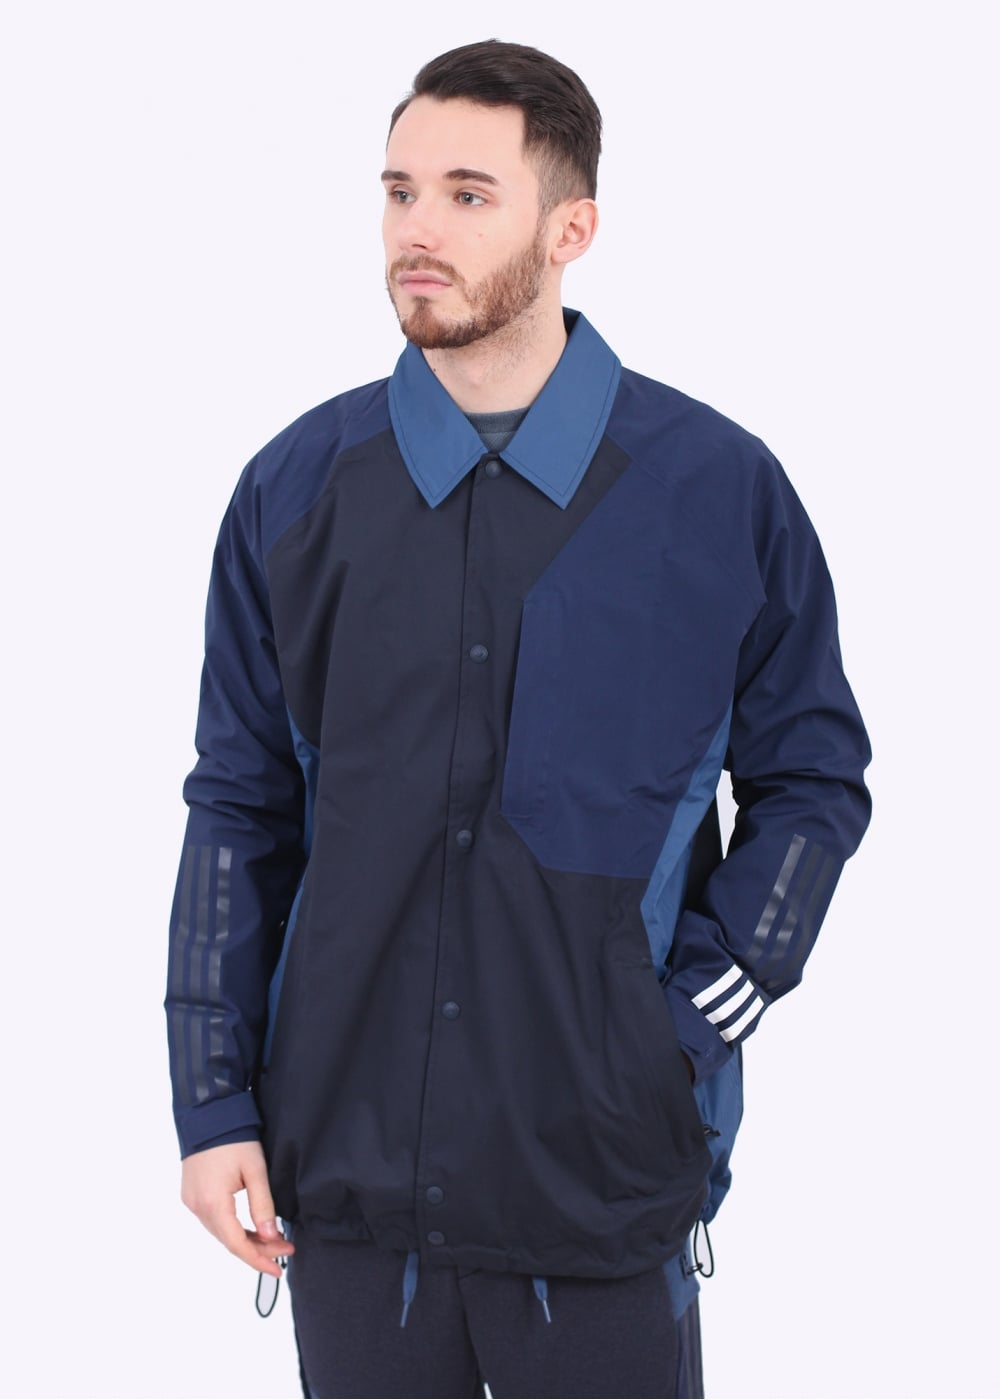 aef9d8a9f0670 adidas Originals x White Mountaineering Bench Jacket - Navy